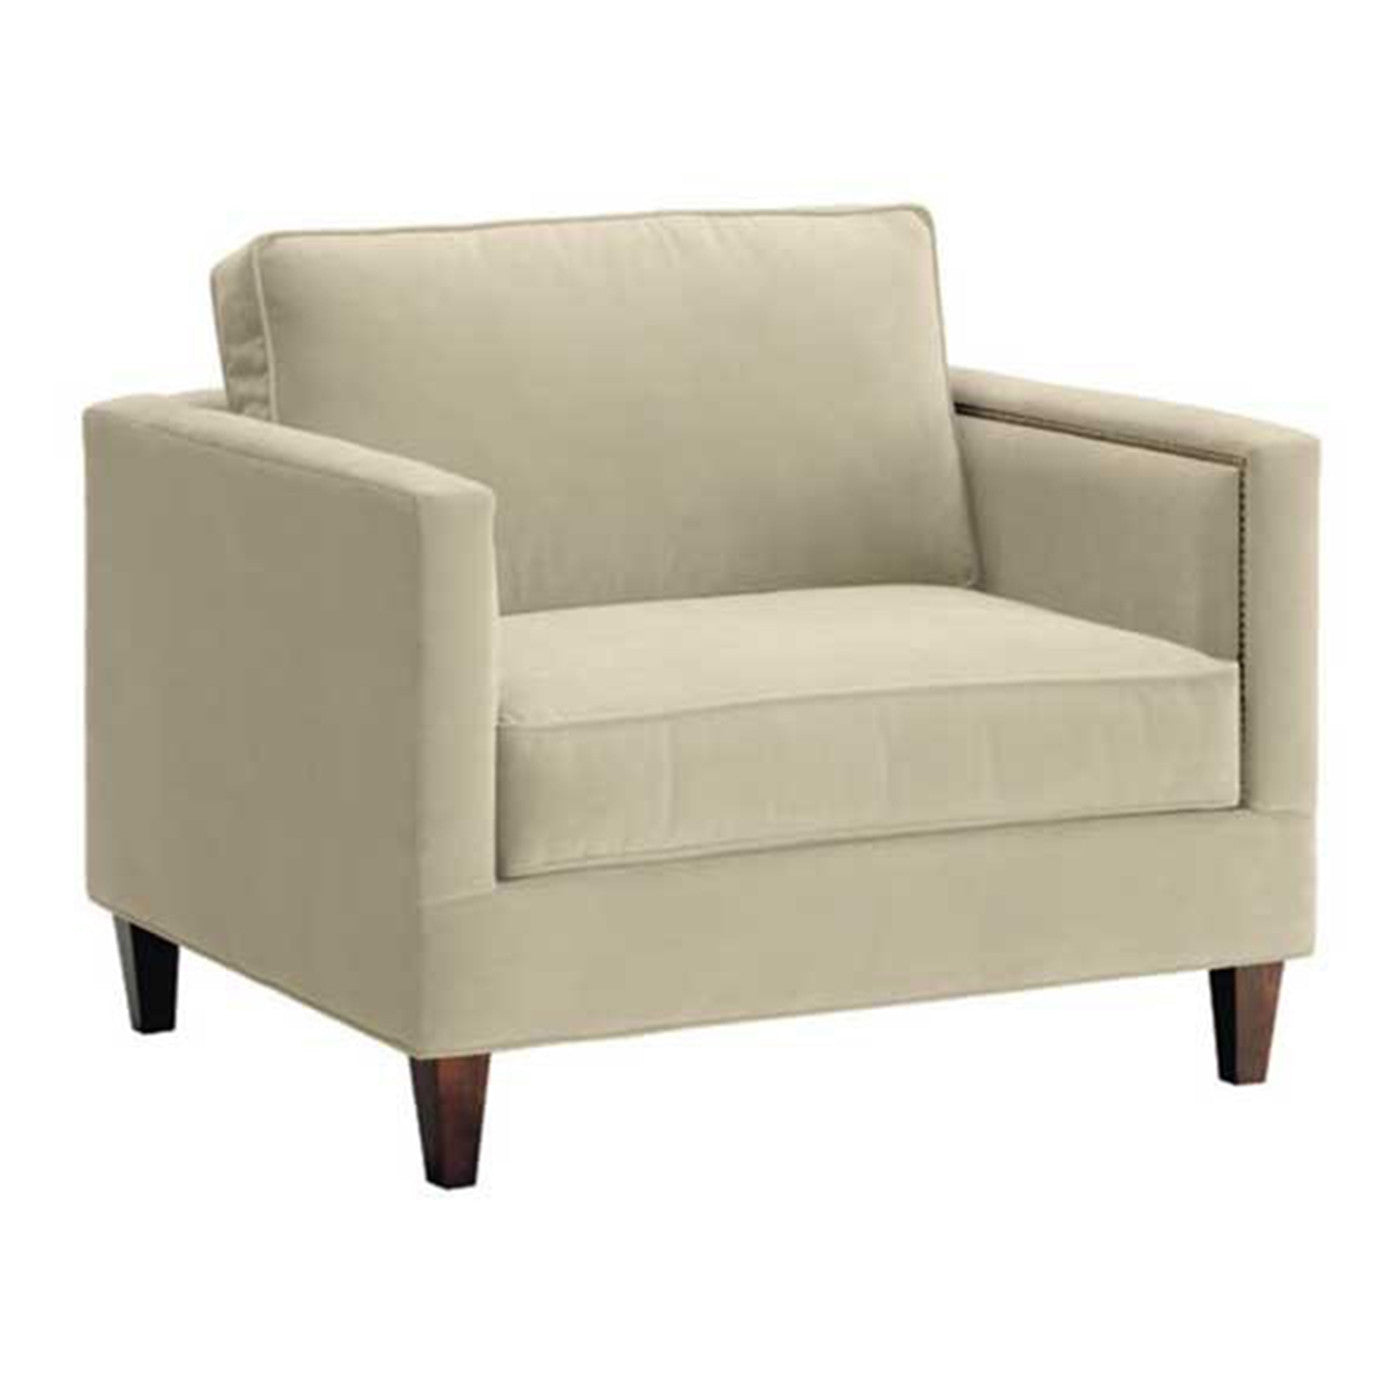 Anderson King Chair CHOICE OF FABRICS